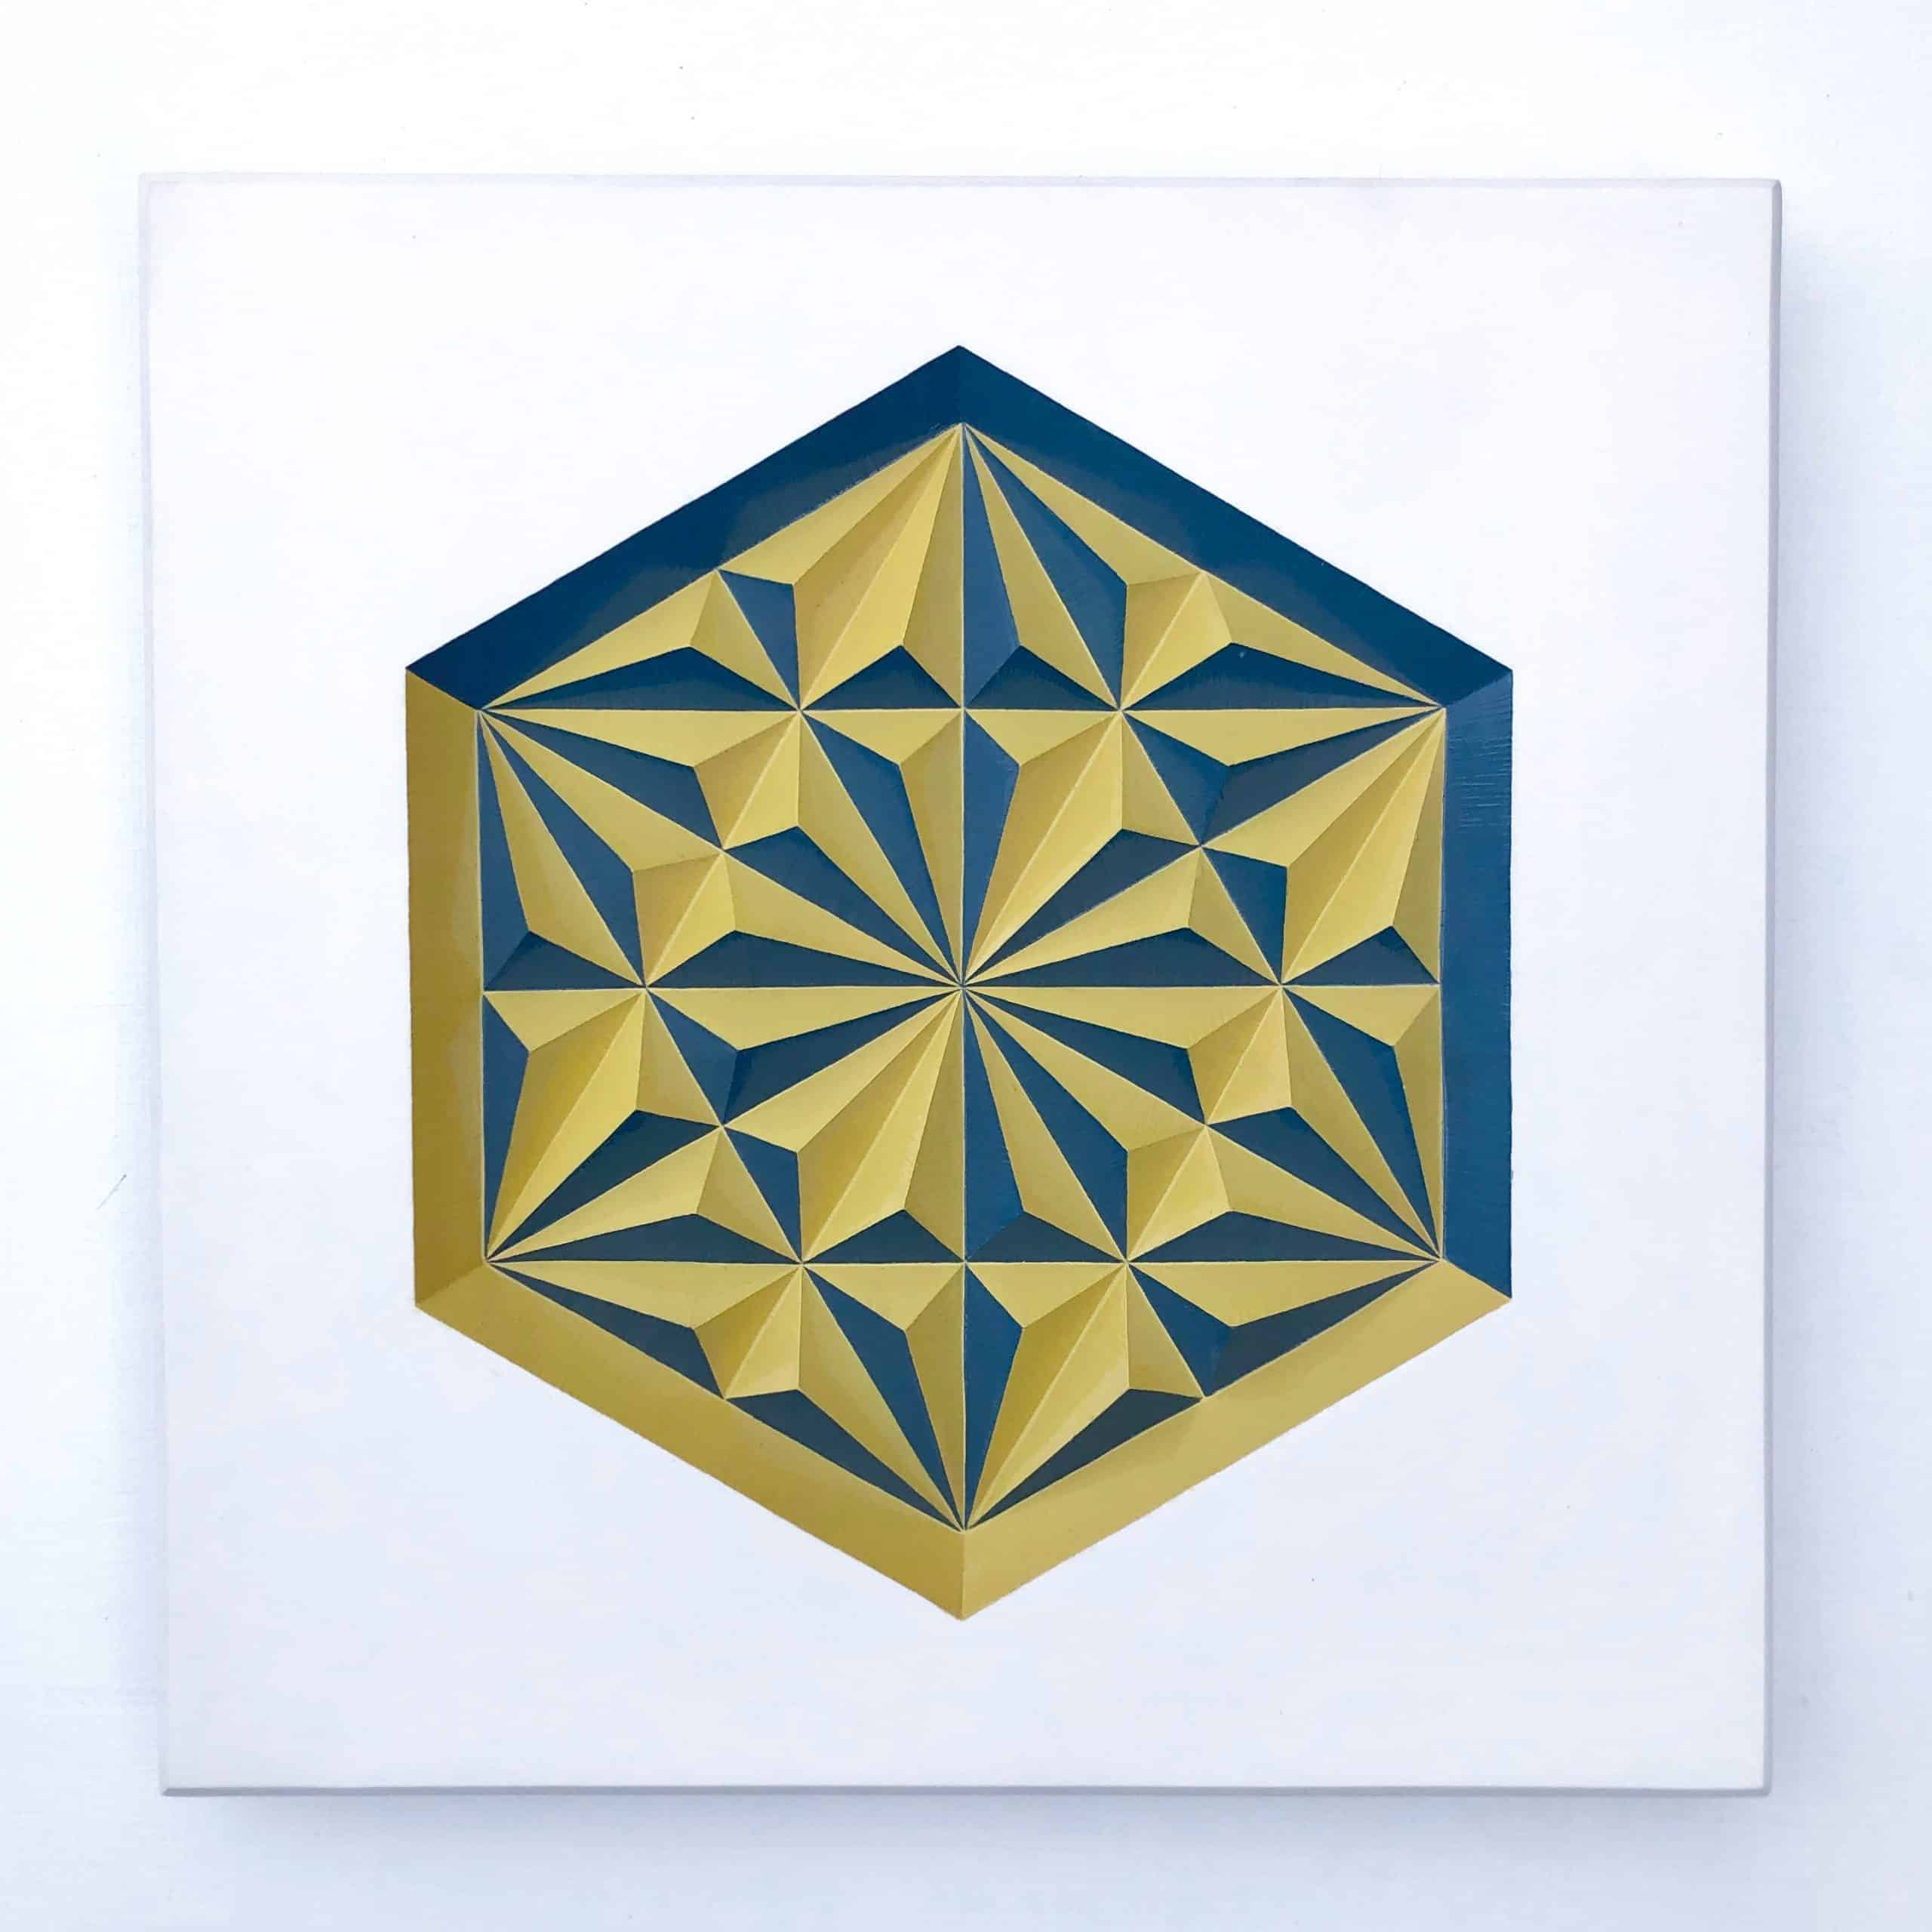 White plaster cast of geometric pattern painted in yellow and blue enamel paint